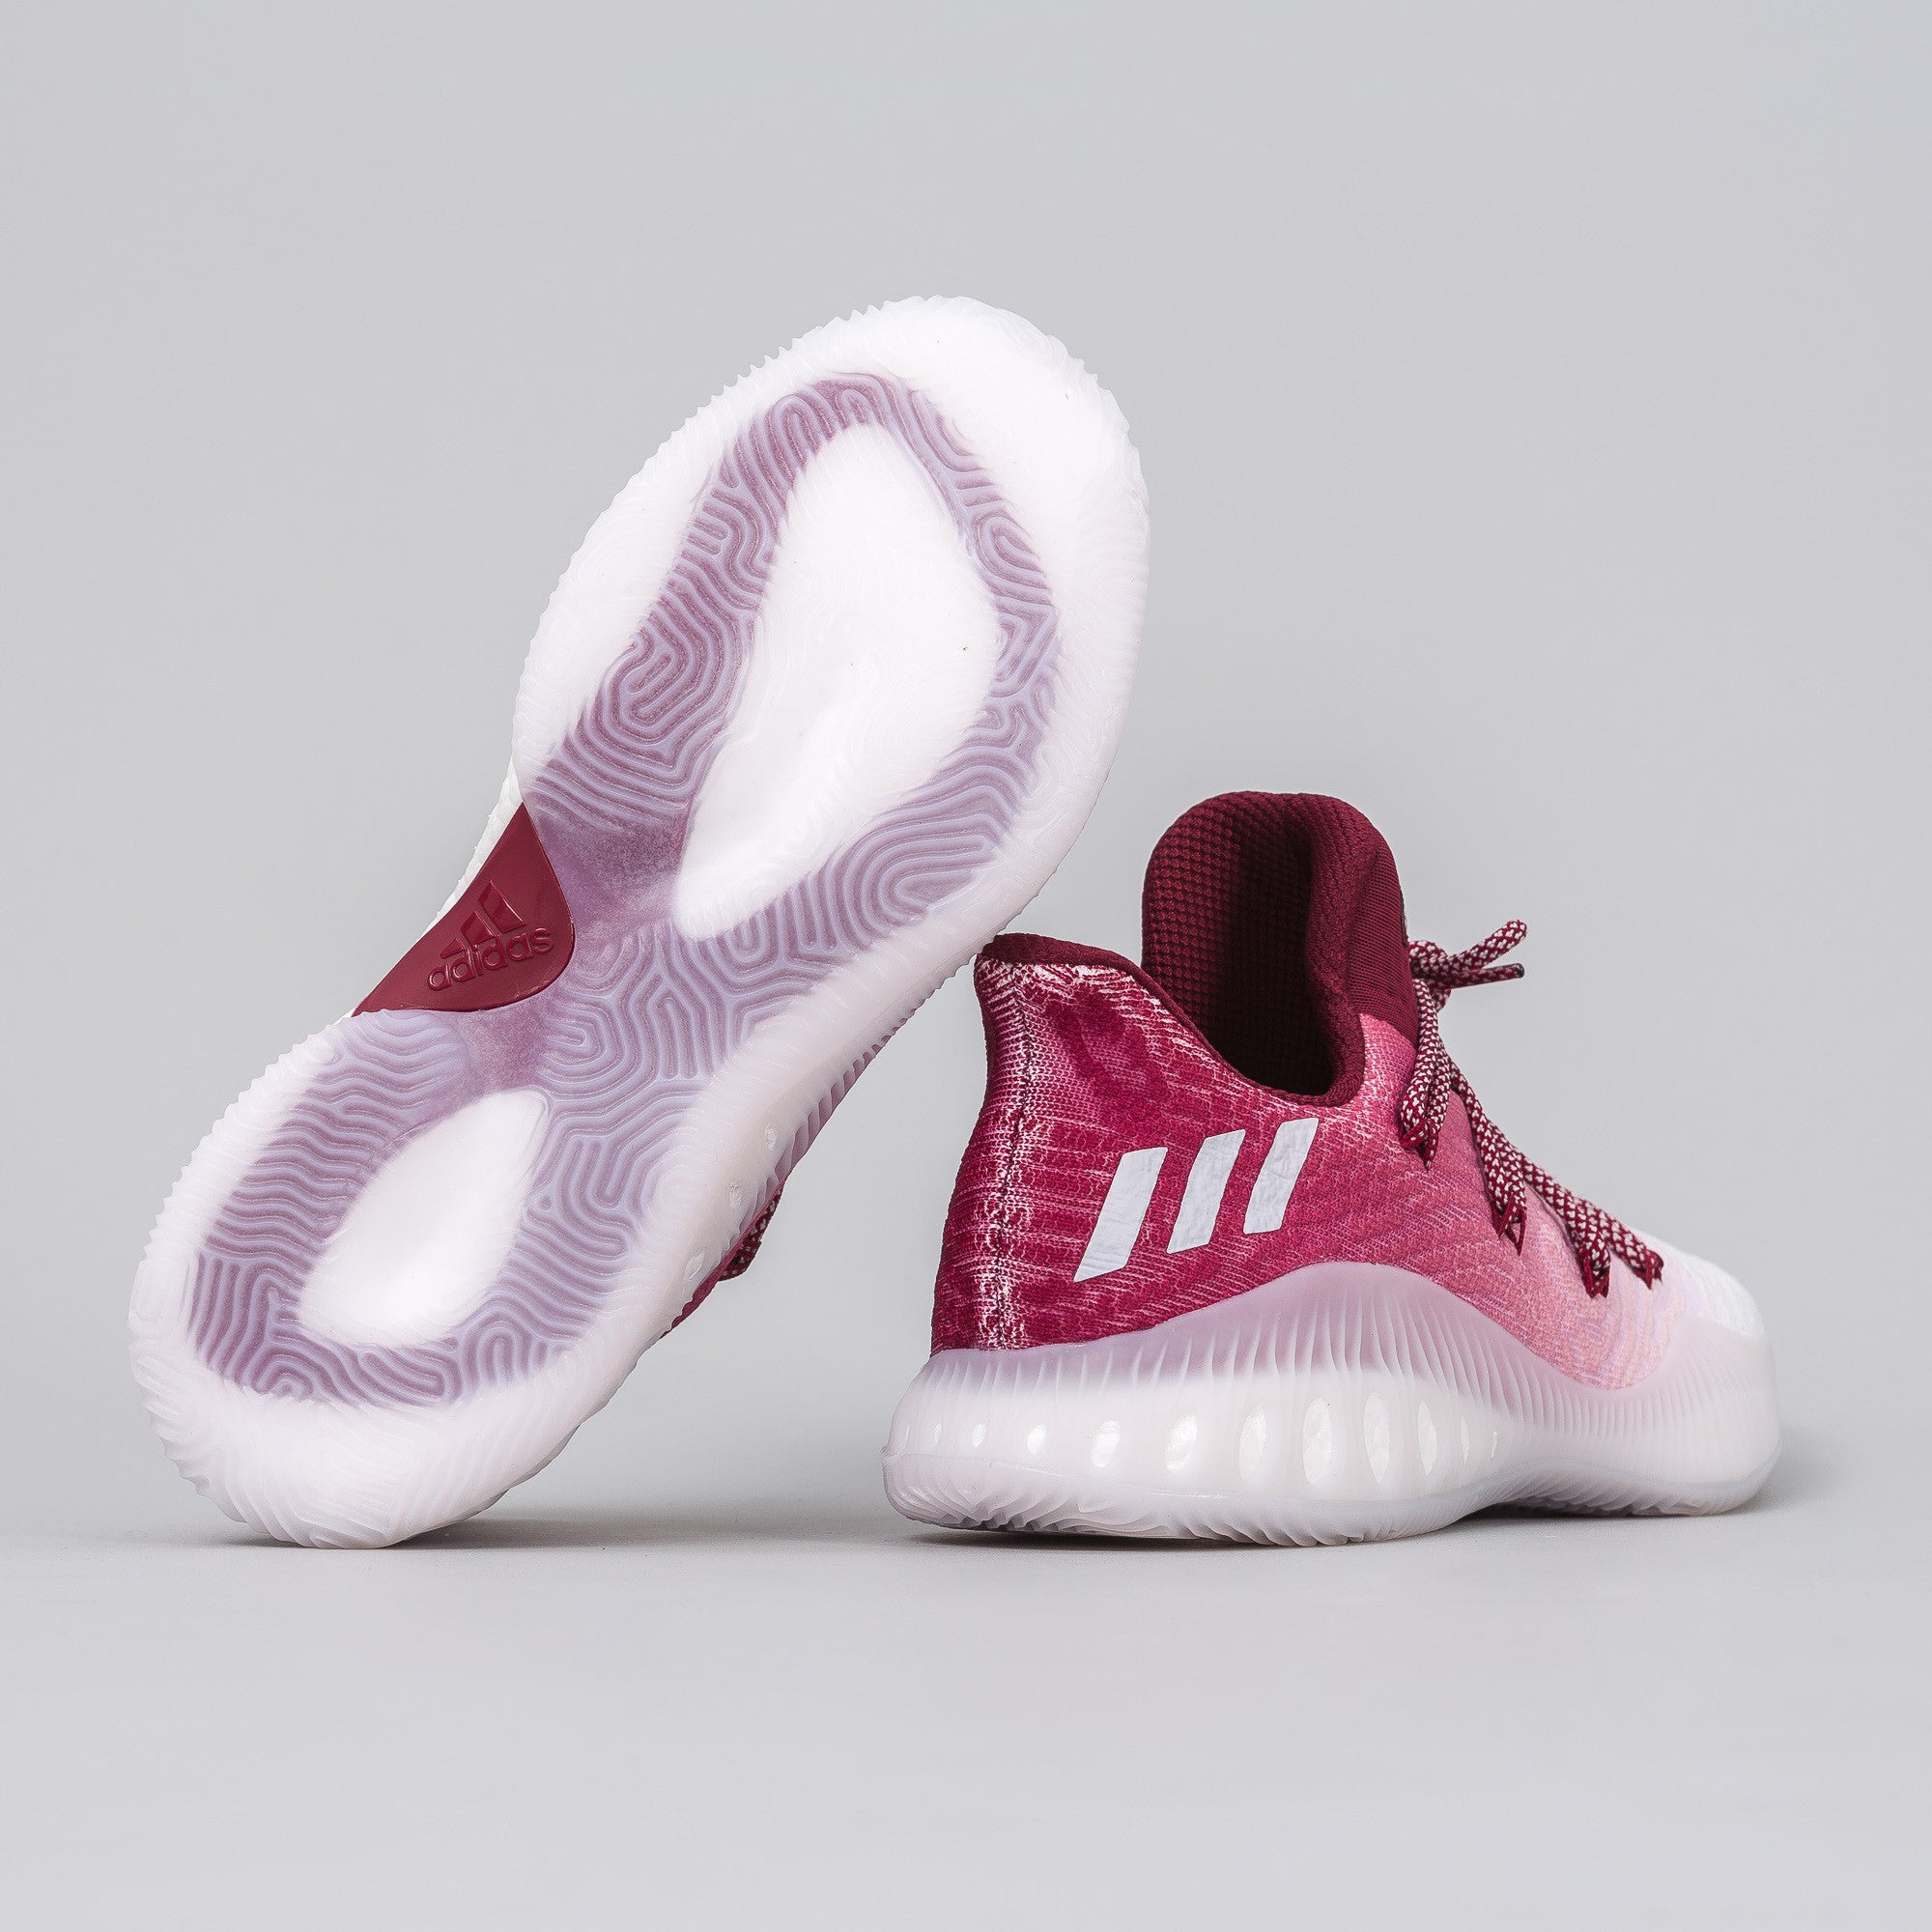 Crazy Explosive Low in Burgundy